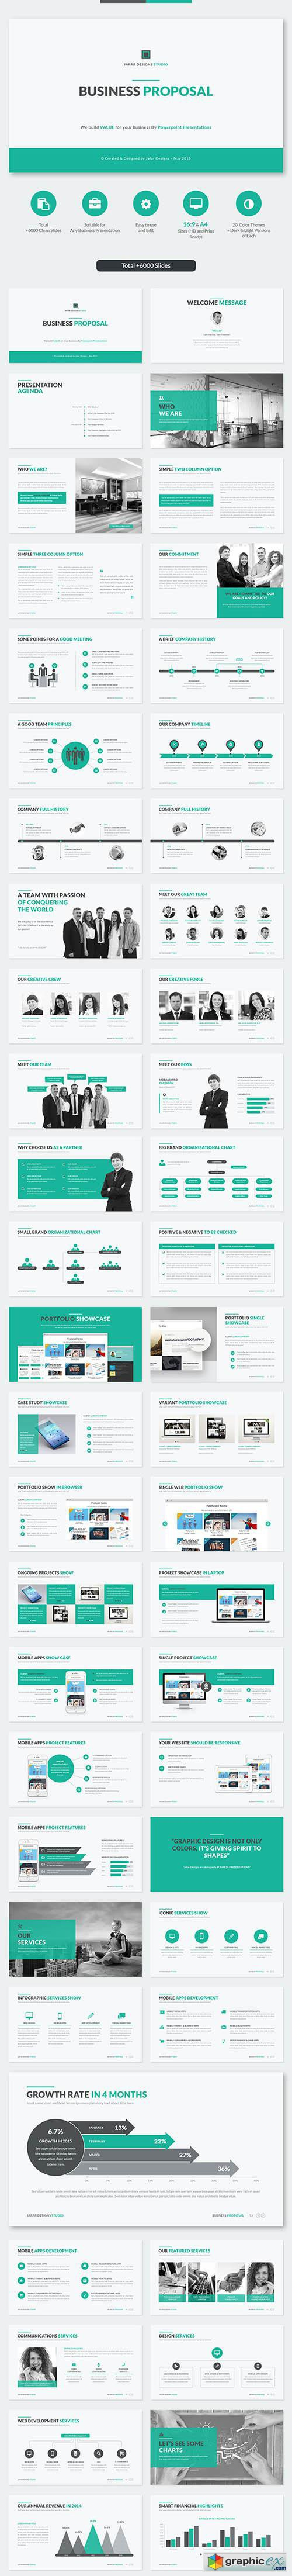 Business proposal powerpoint template free download vector stock business proposal powerpoint template accmission Choice Image